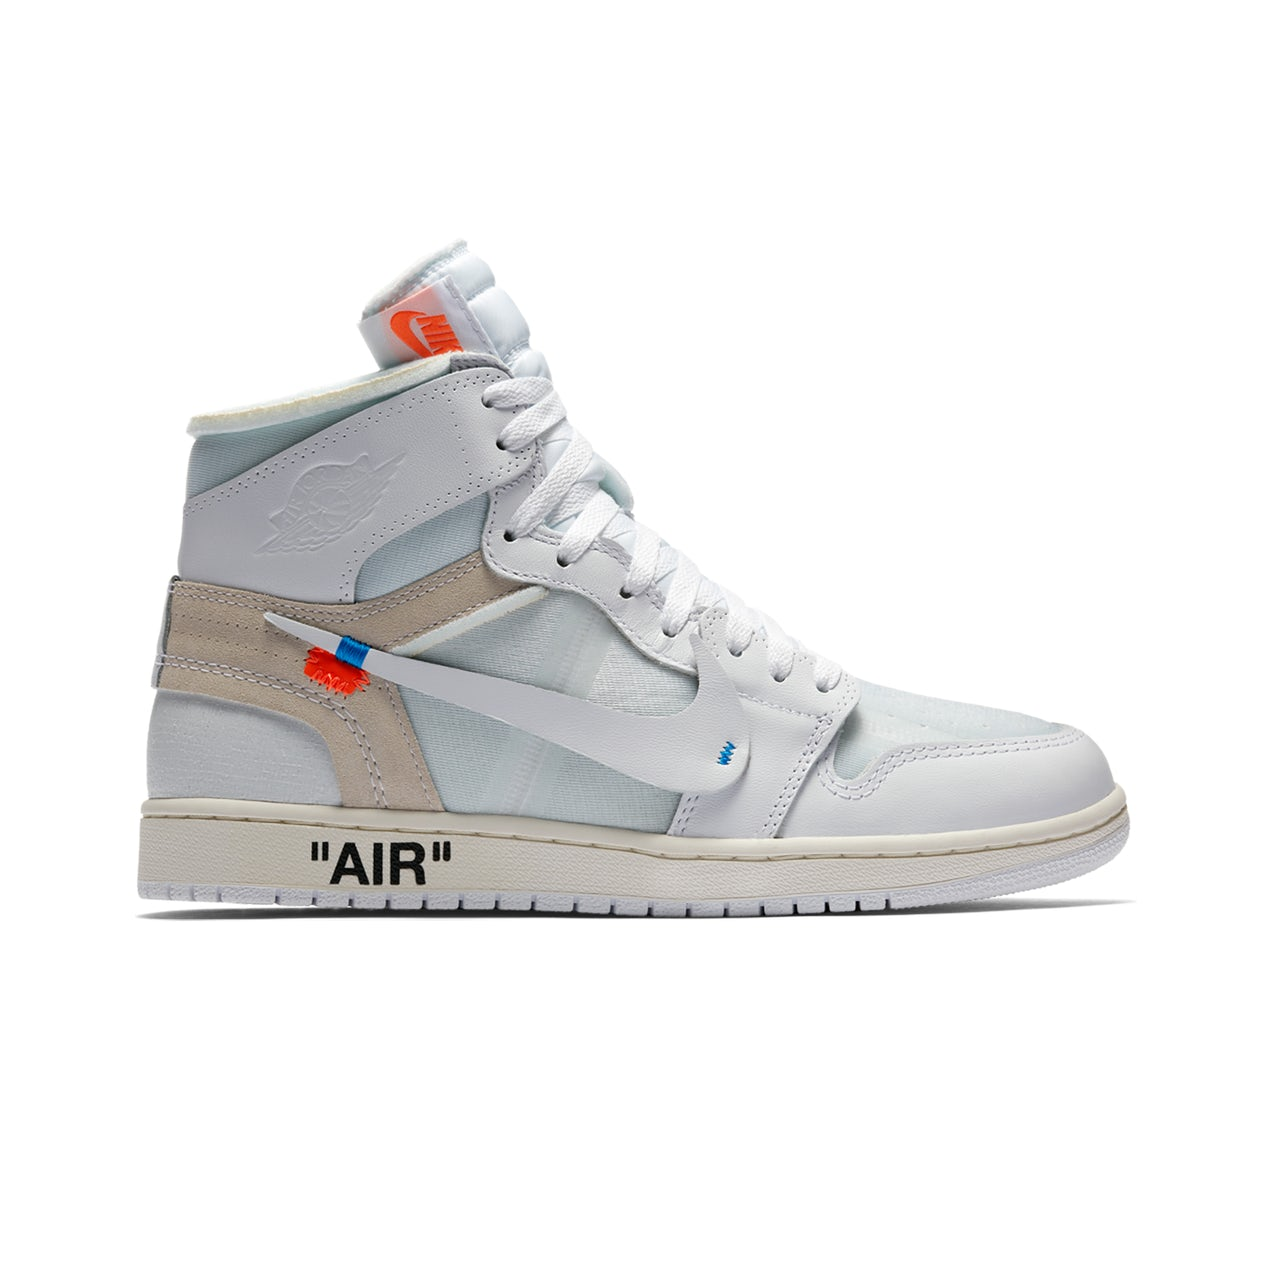 96394a9556b A Definitive Ranking of Virgil Abloh s Off-White Nike Collabs    ONE37pm